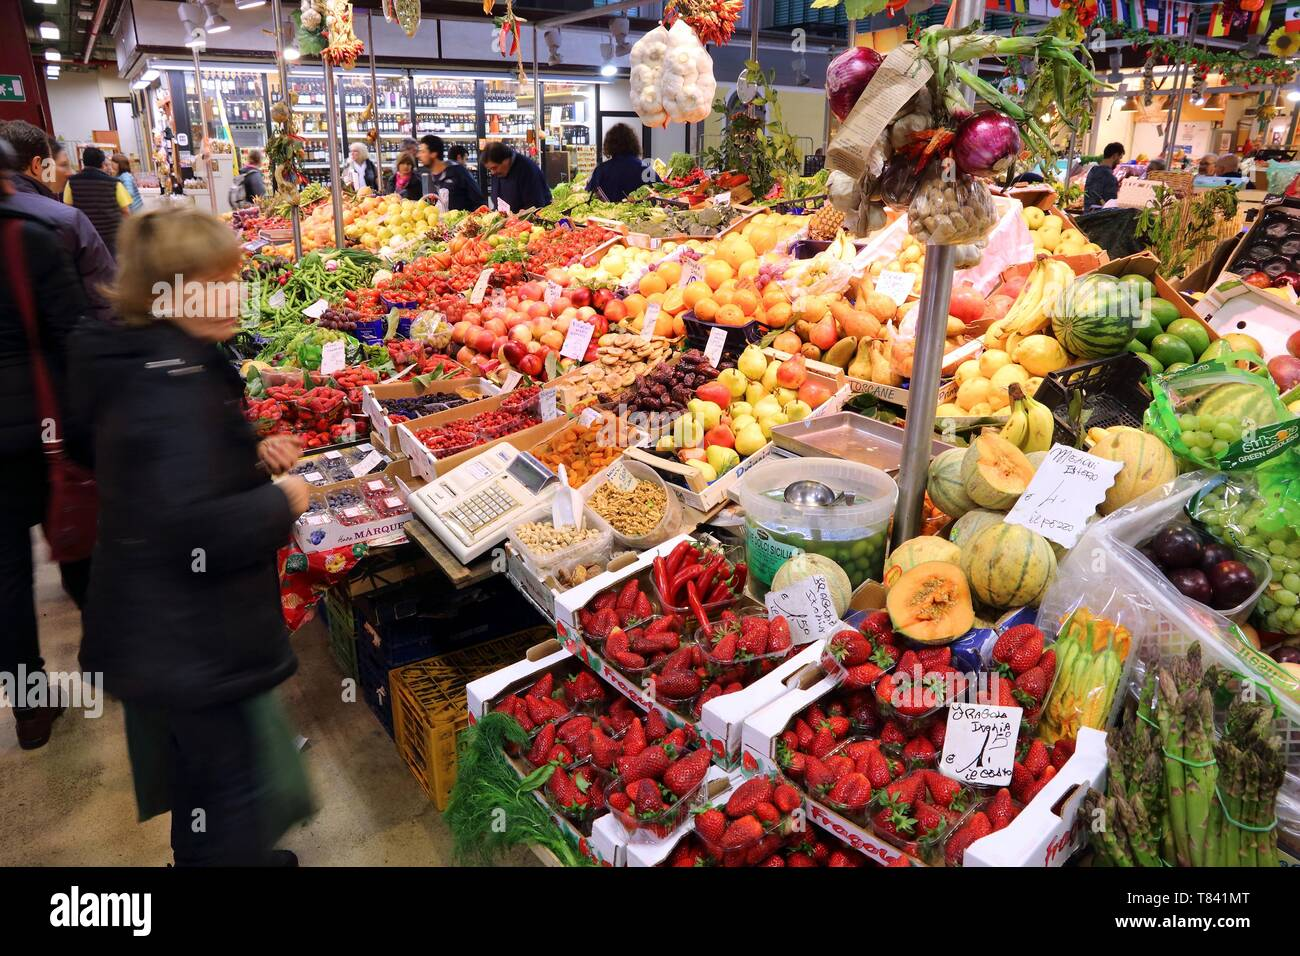 FLORENCE, ITALY - APRIL 30, 2015: People buy fruit at Mercato Centrale market in Florence, Italy. The market is an ultimate Italian shopping experienc - Stock Image